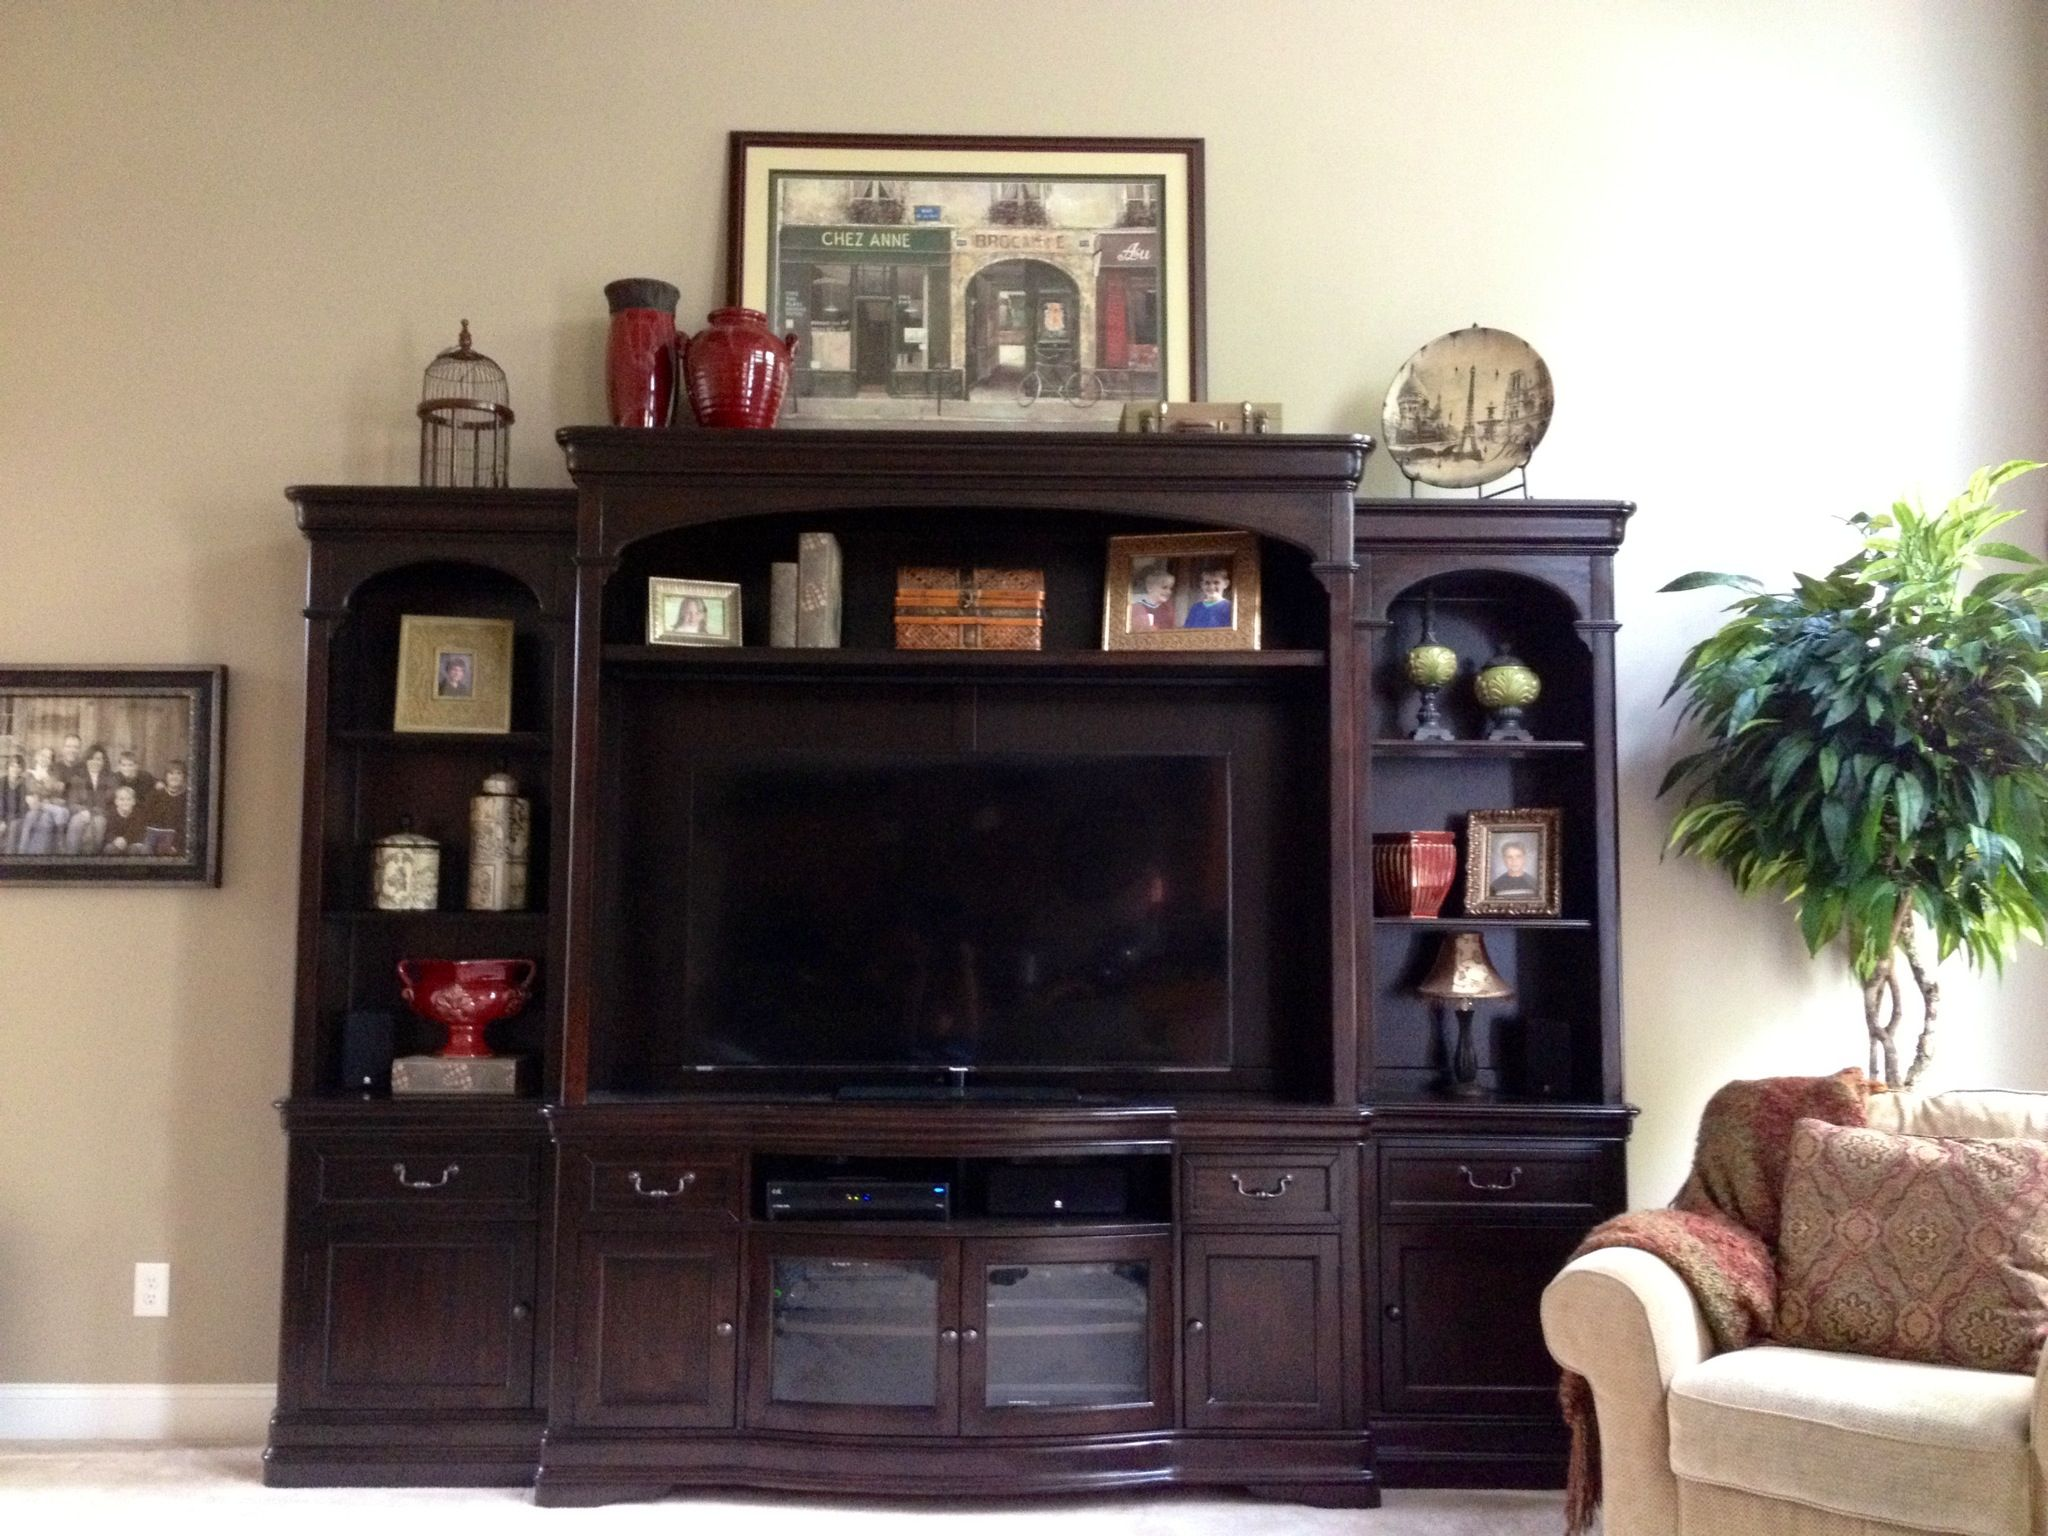 Pin by Julie McIntyre on Family Room | Living room ...